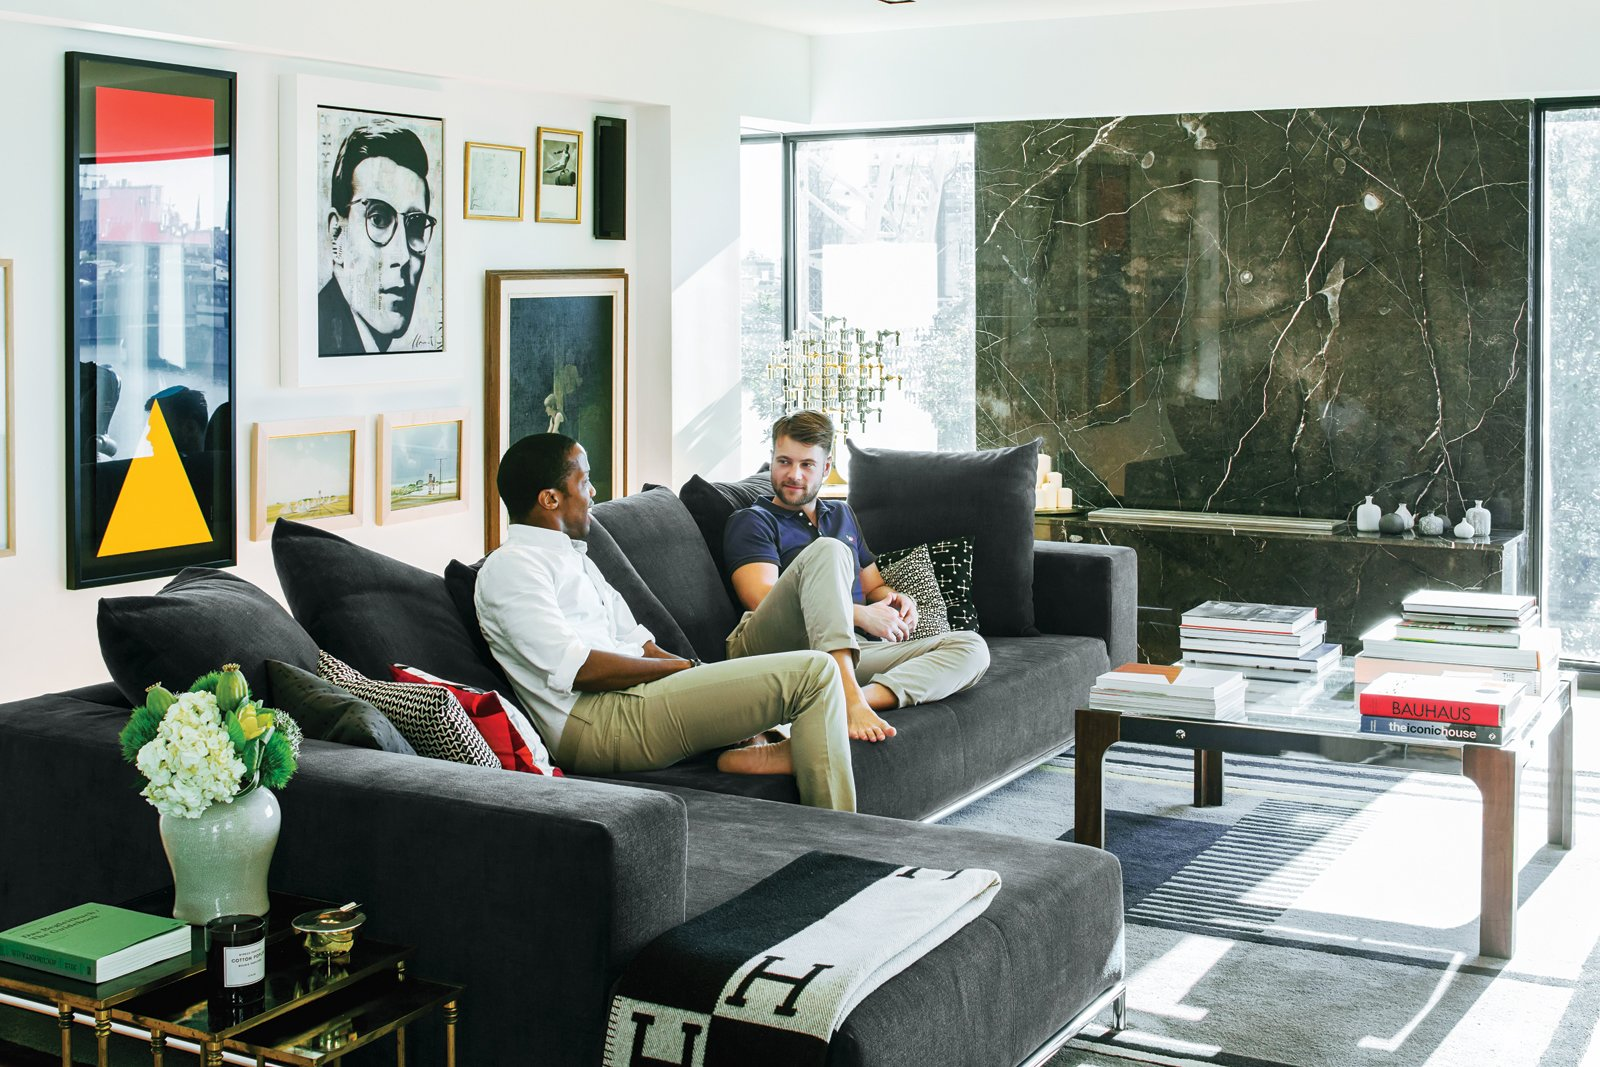 In the couple's art-filled living room, a vintage coffee table sits atop a rug by Gunta Stölzl, purchased from Design Within Reach. To accommodate get-togethers with friends and family (Peart's twin brother, Dexter, lives in a neighboring unit with his wife and daughter), they sought a sofa that could hold 10 to 15 people at a time. The George sectional, designed by Antonio Citterio for B&B Italia, fit the bill. Tagged: Living Room, Coffee Tables, and Sectional. A Renovated Flat in Moshe Safdie's Habitat '67 - Photo 6 of 9